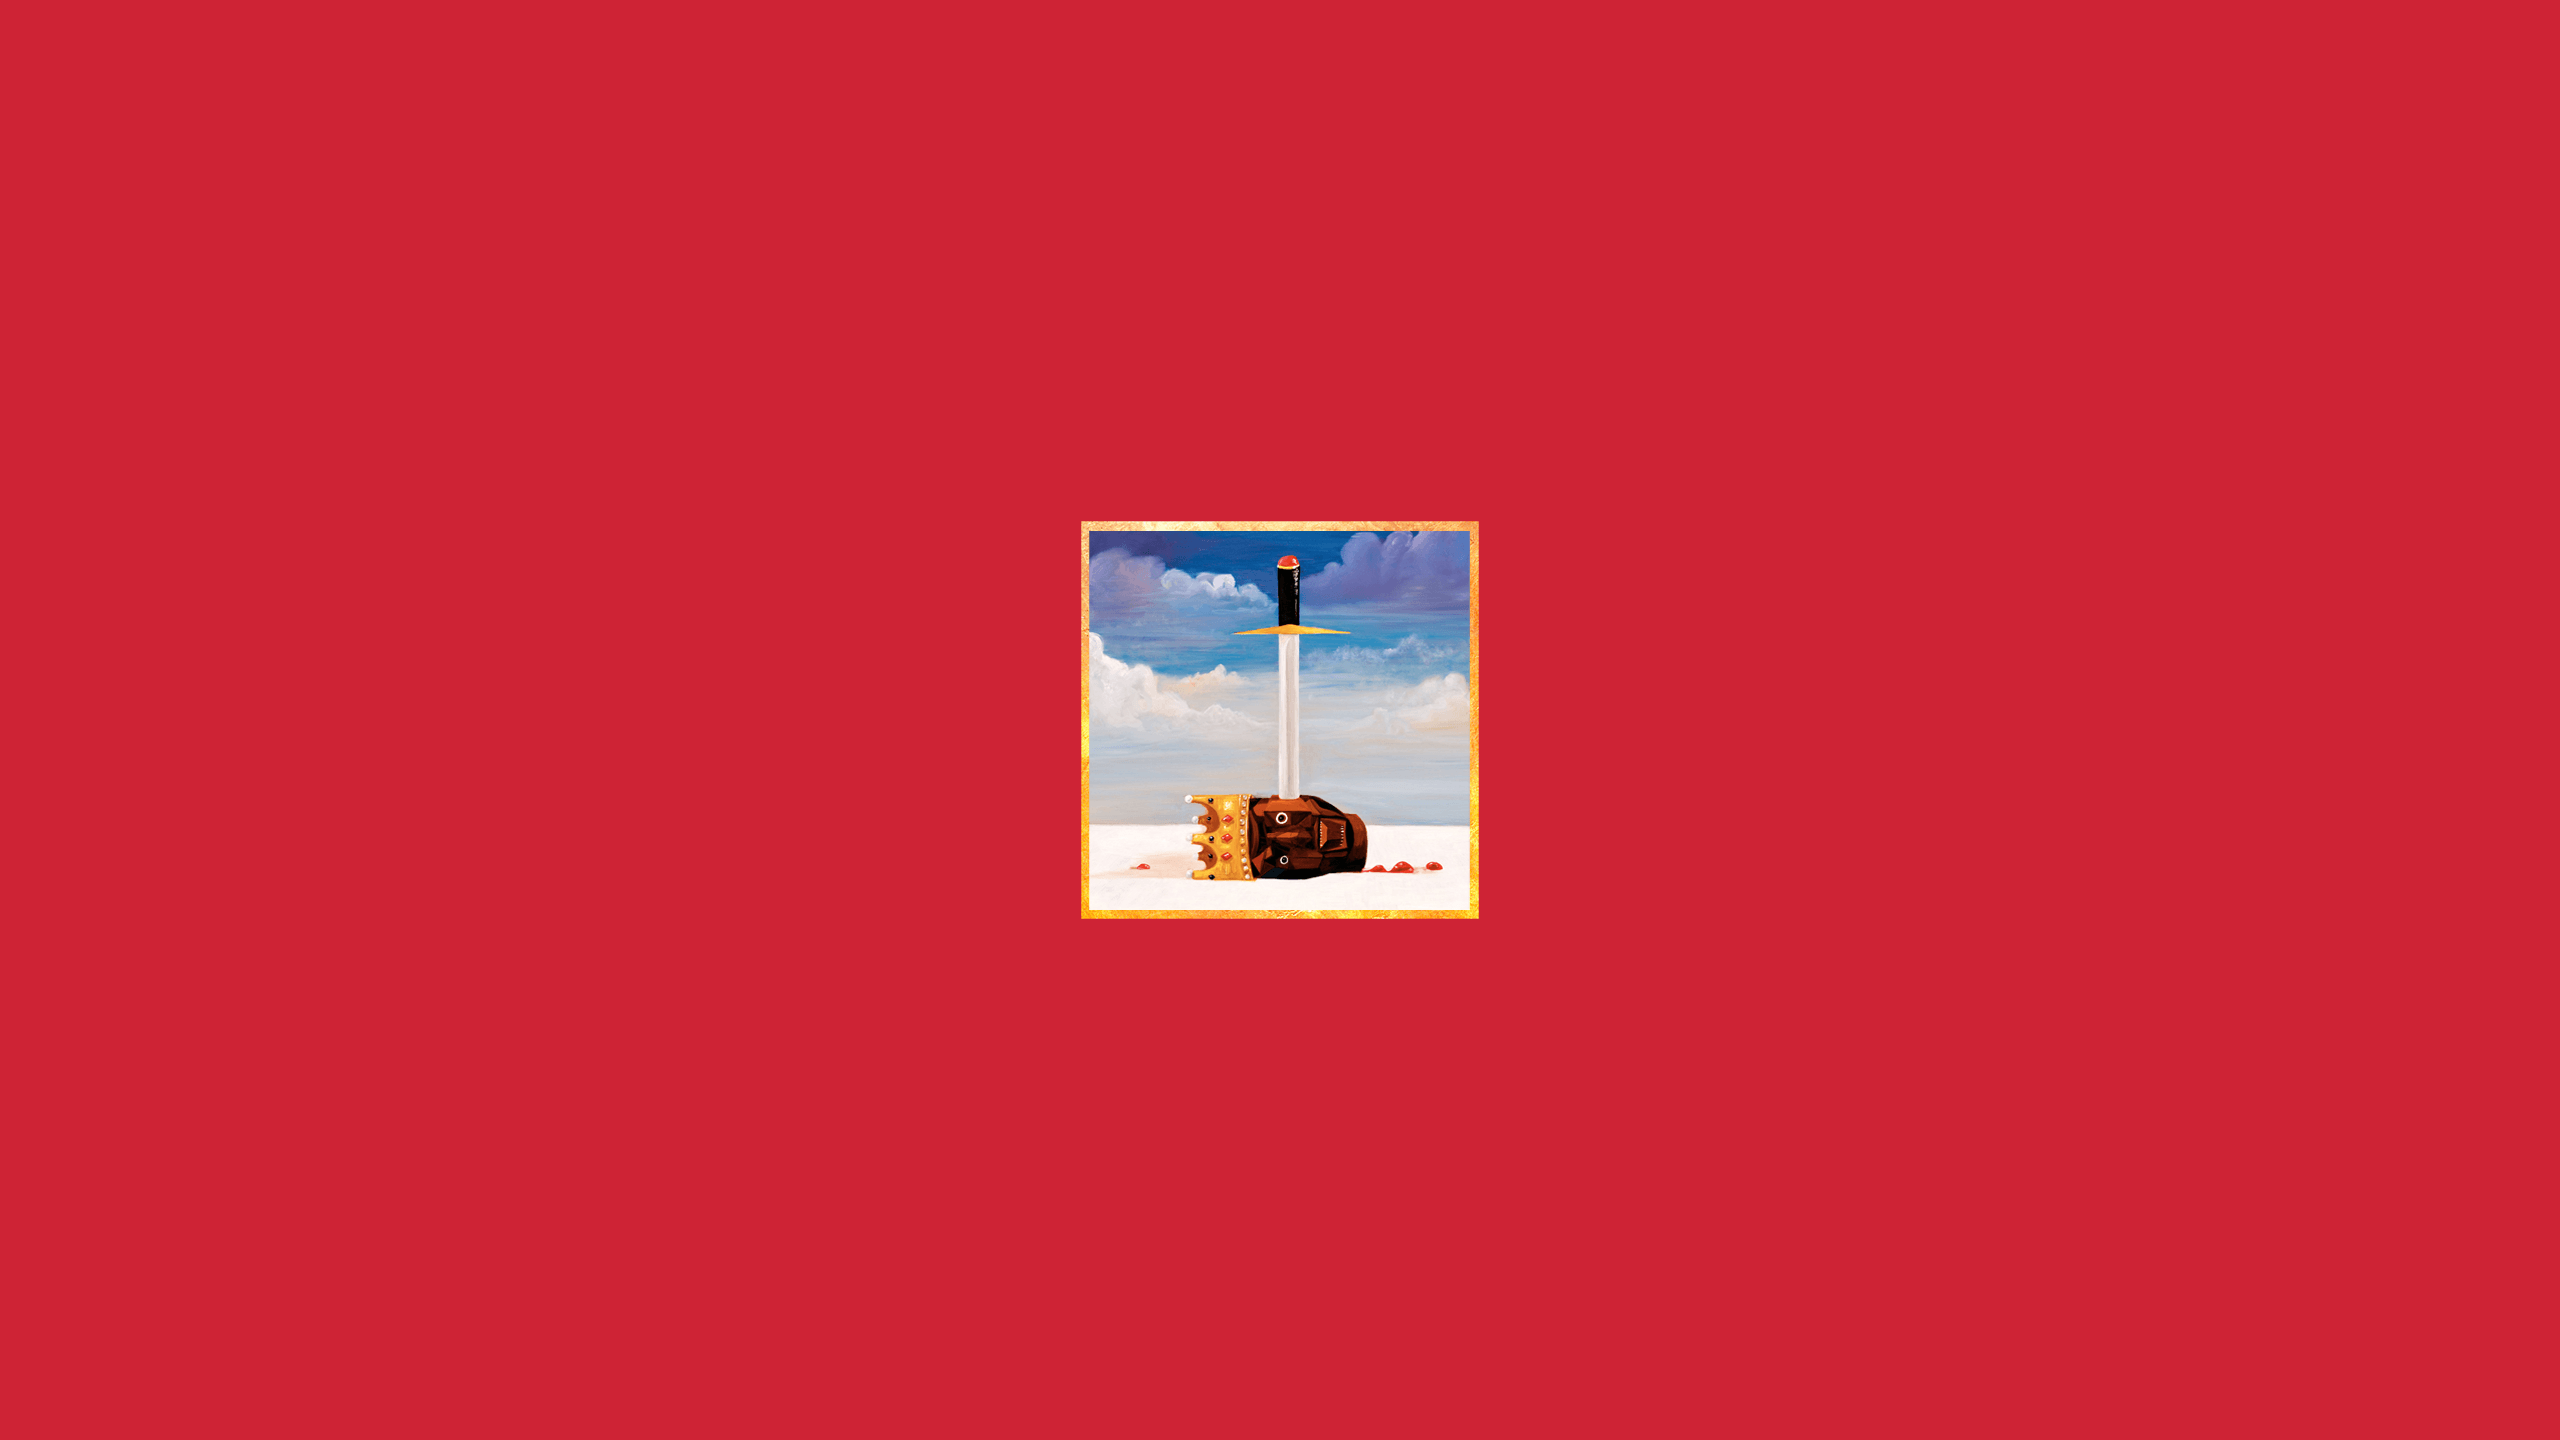 Red Album Cover Wallpapers Top Free Red Album Cover